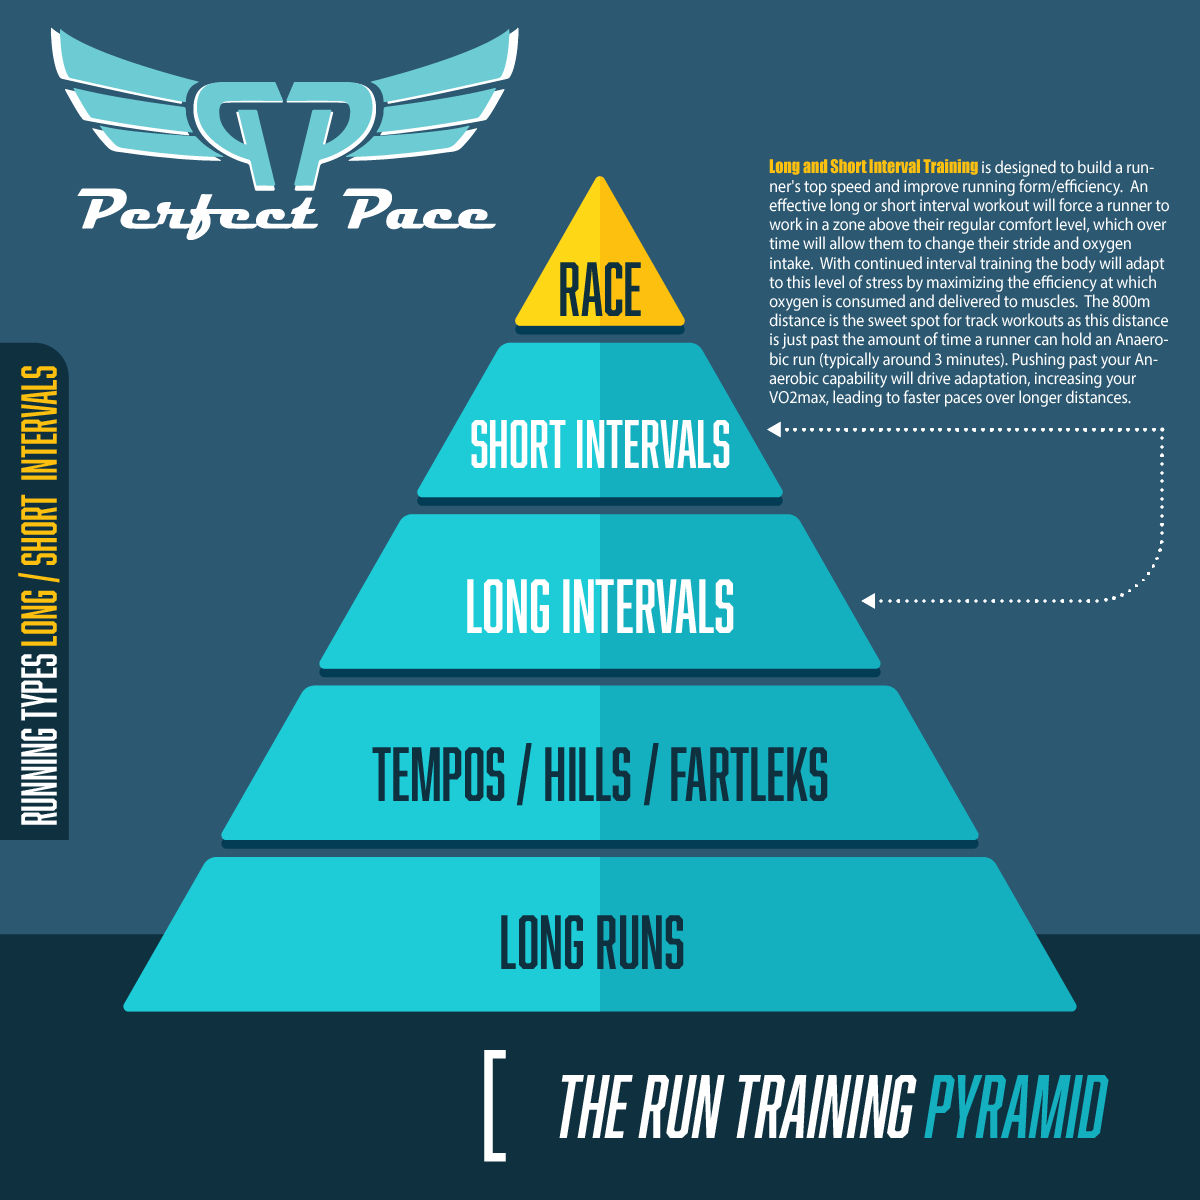 The Run Training Pyramid - Long and Short Intervals